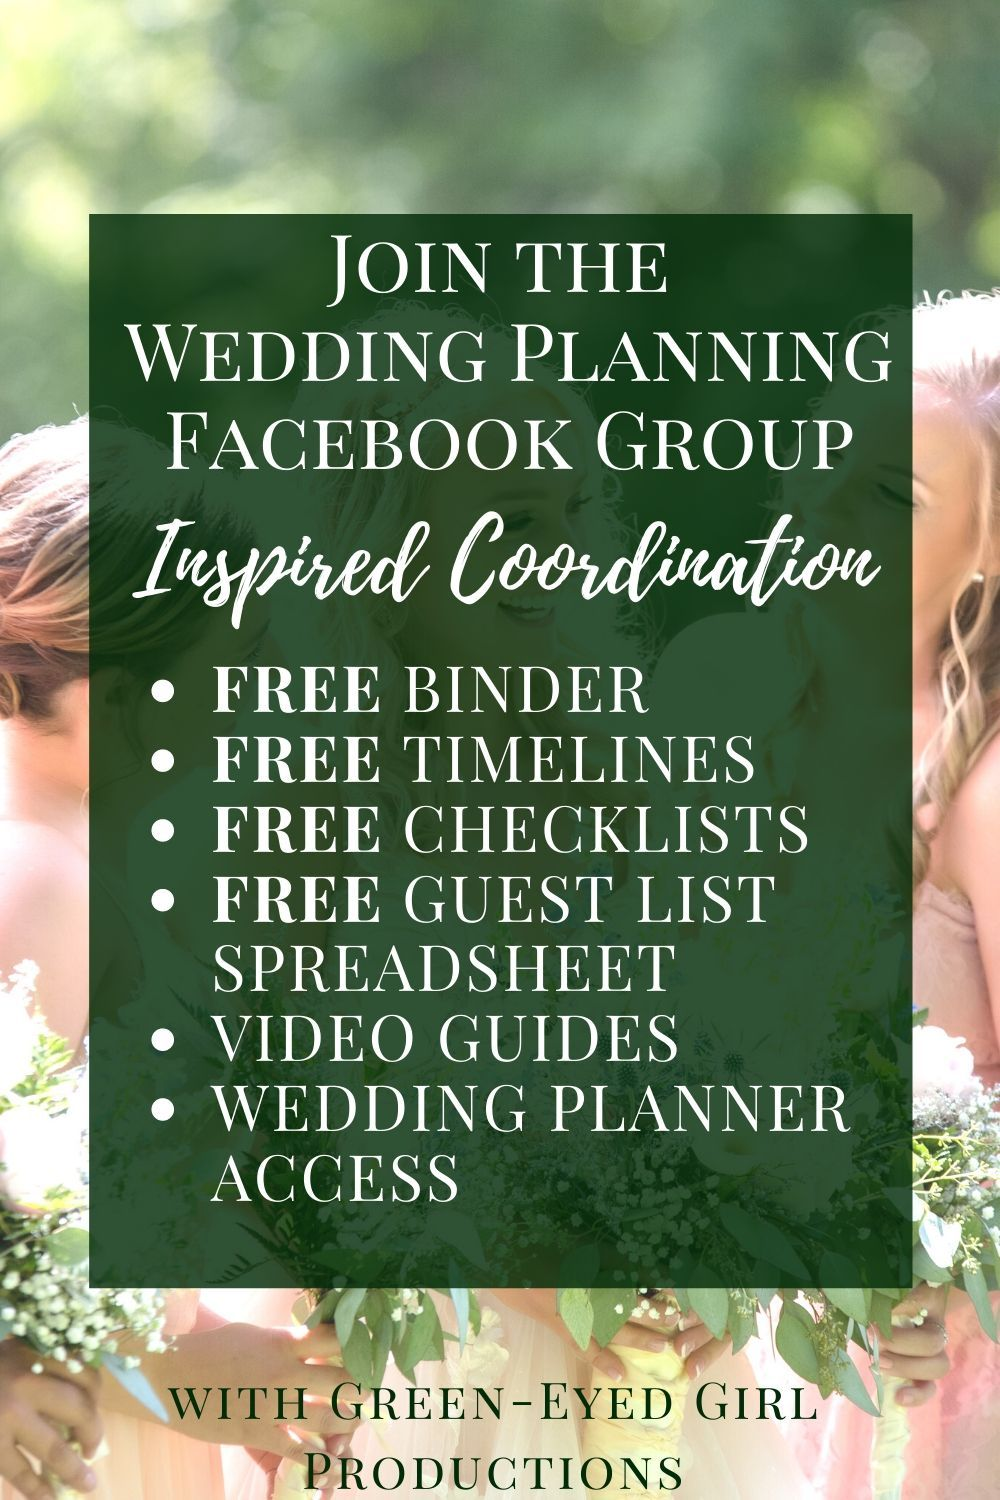 Wedding Planning Facebook Group | Inspired Coordination - Green-Eyed Girl Productions